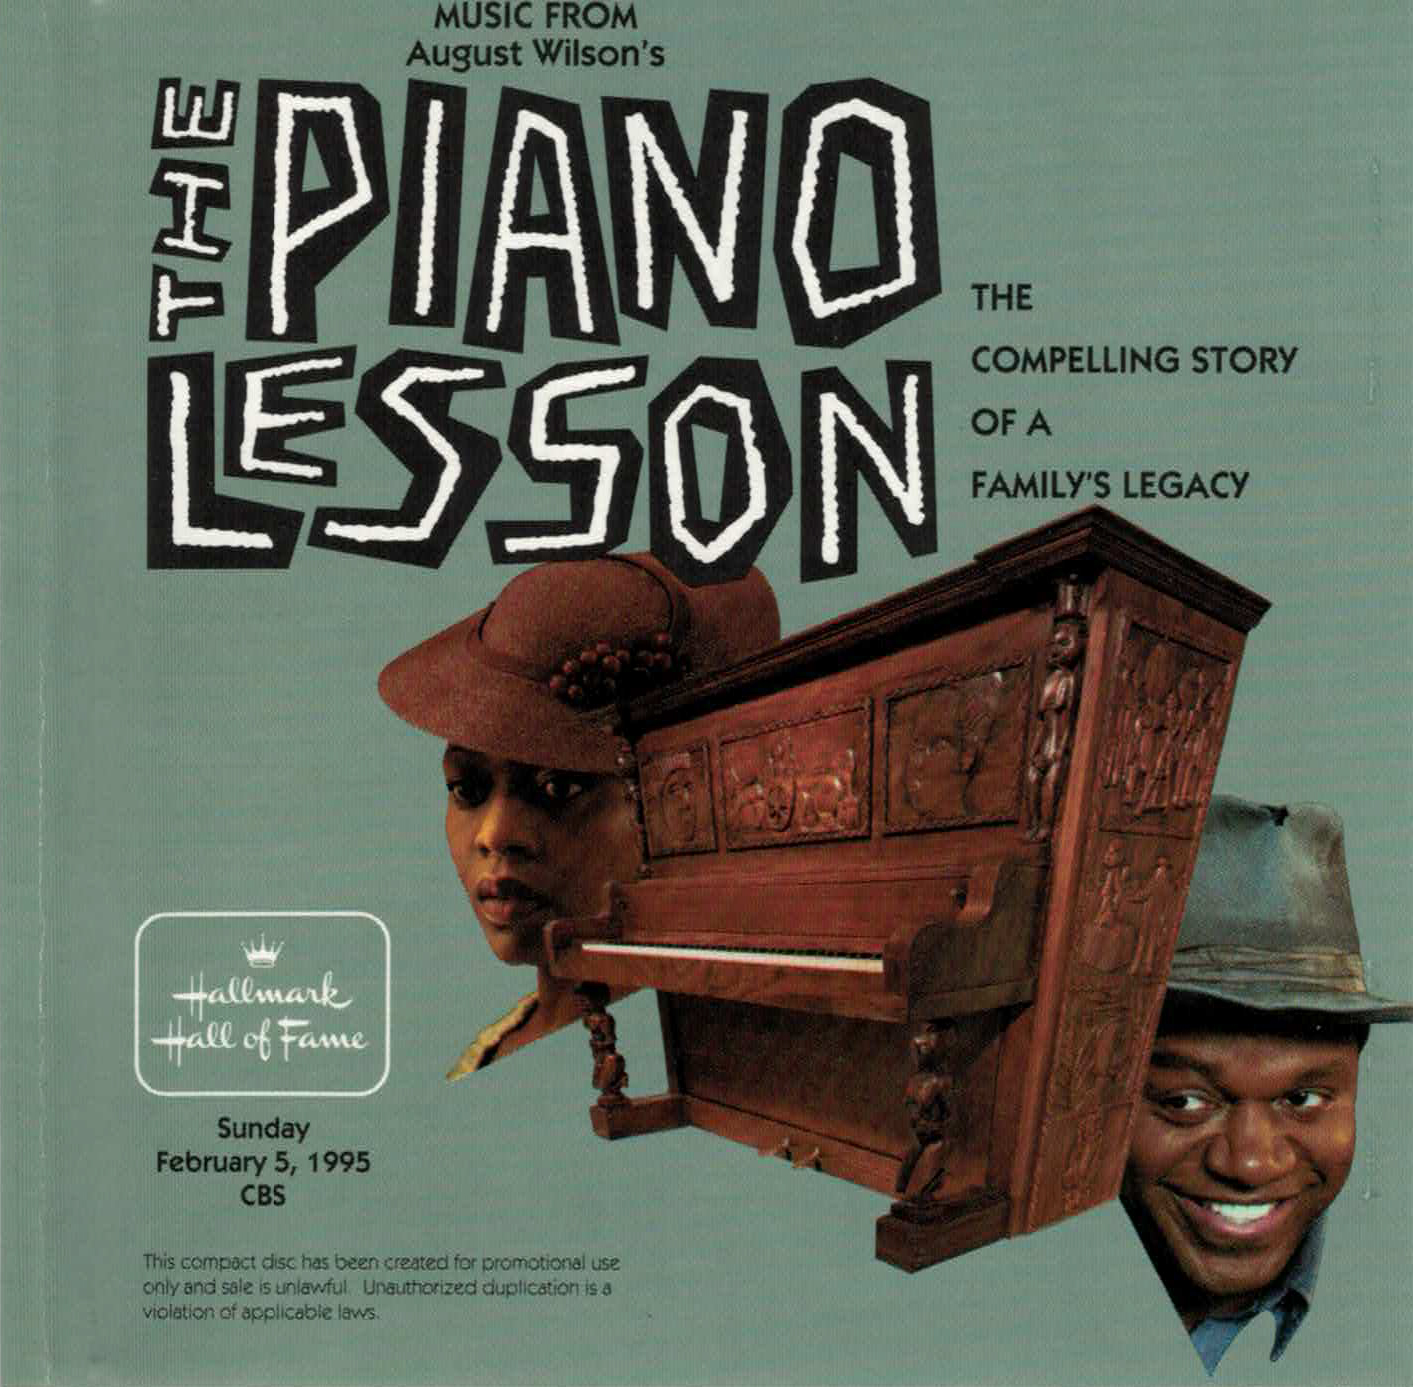 SOUNDTRACK, PIANO LESSON